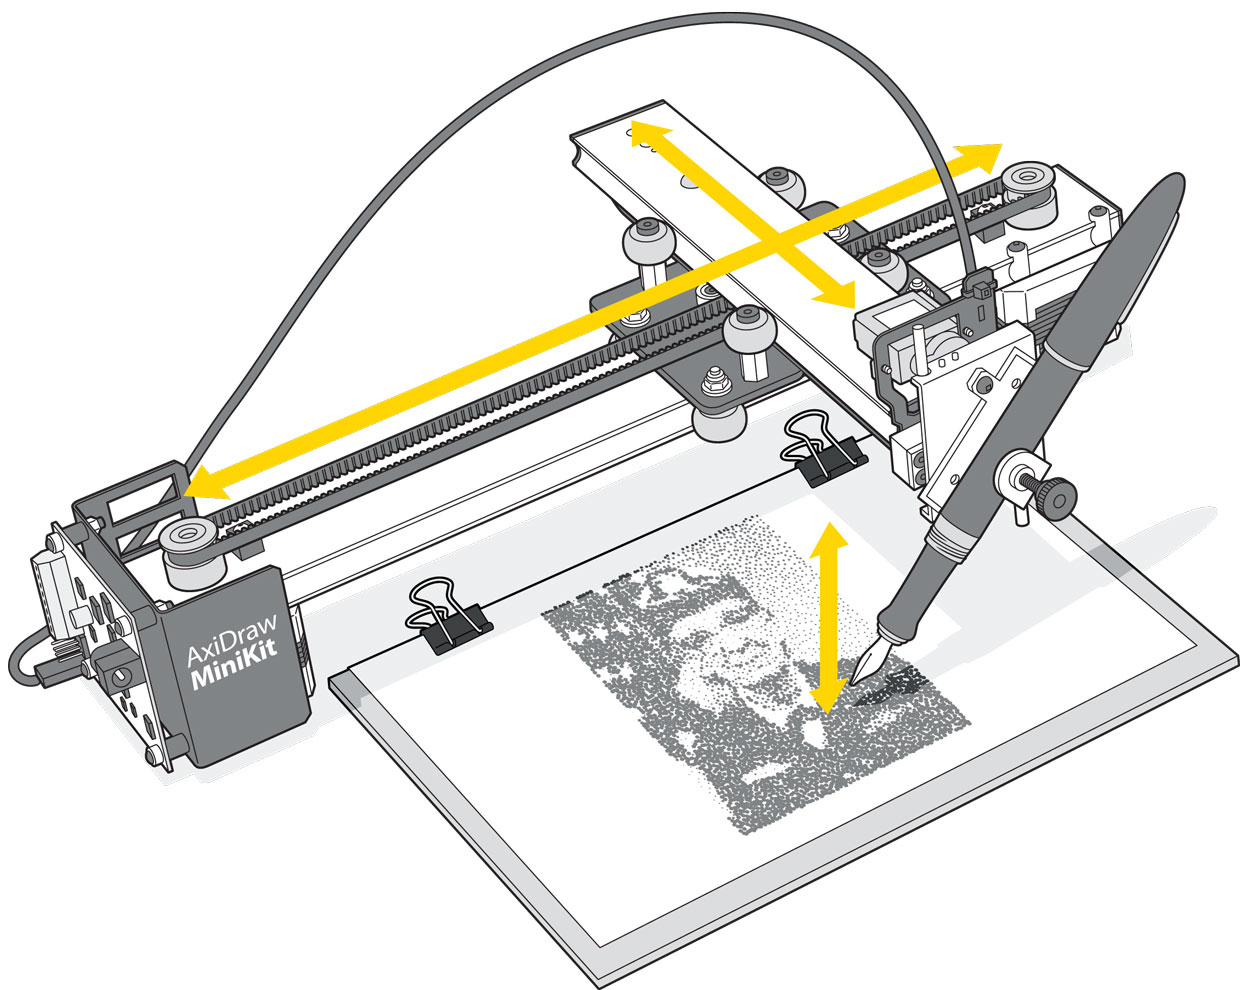 Drawing of AxiDraw Minikit overlaid with arrows showing direction of travel